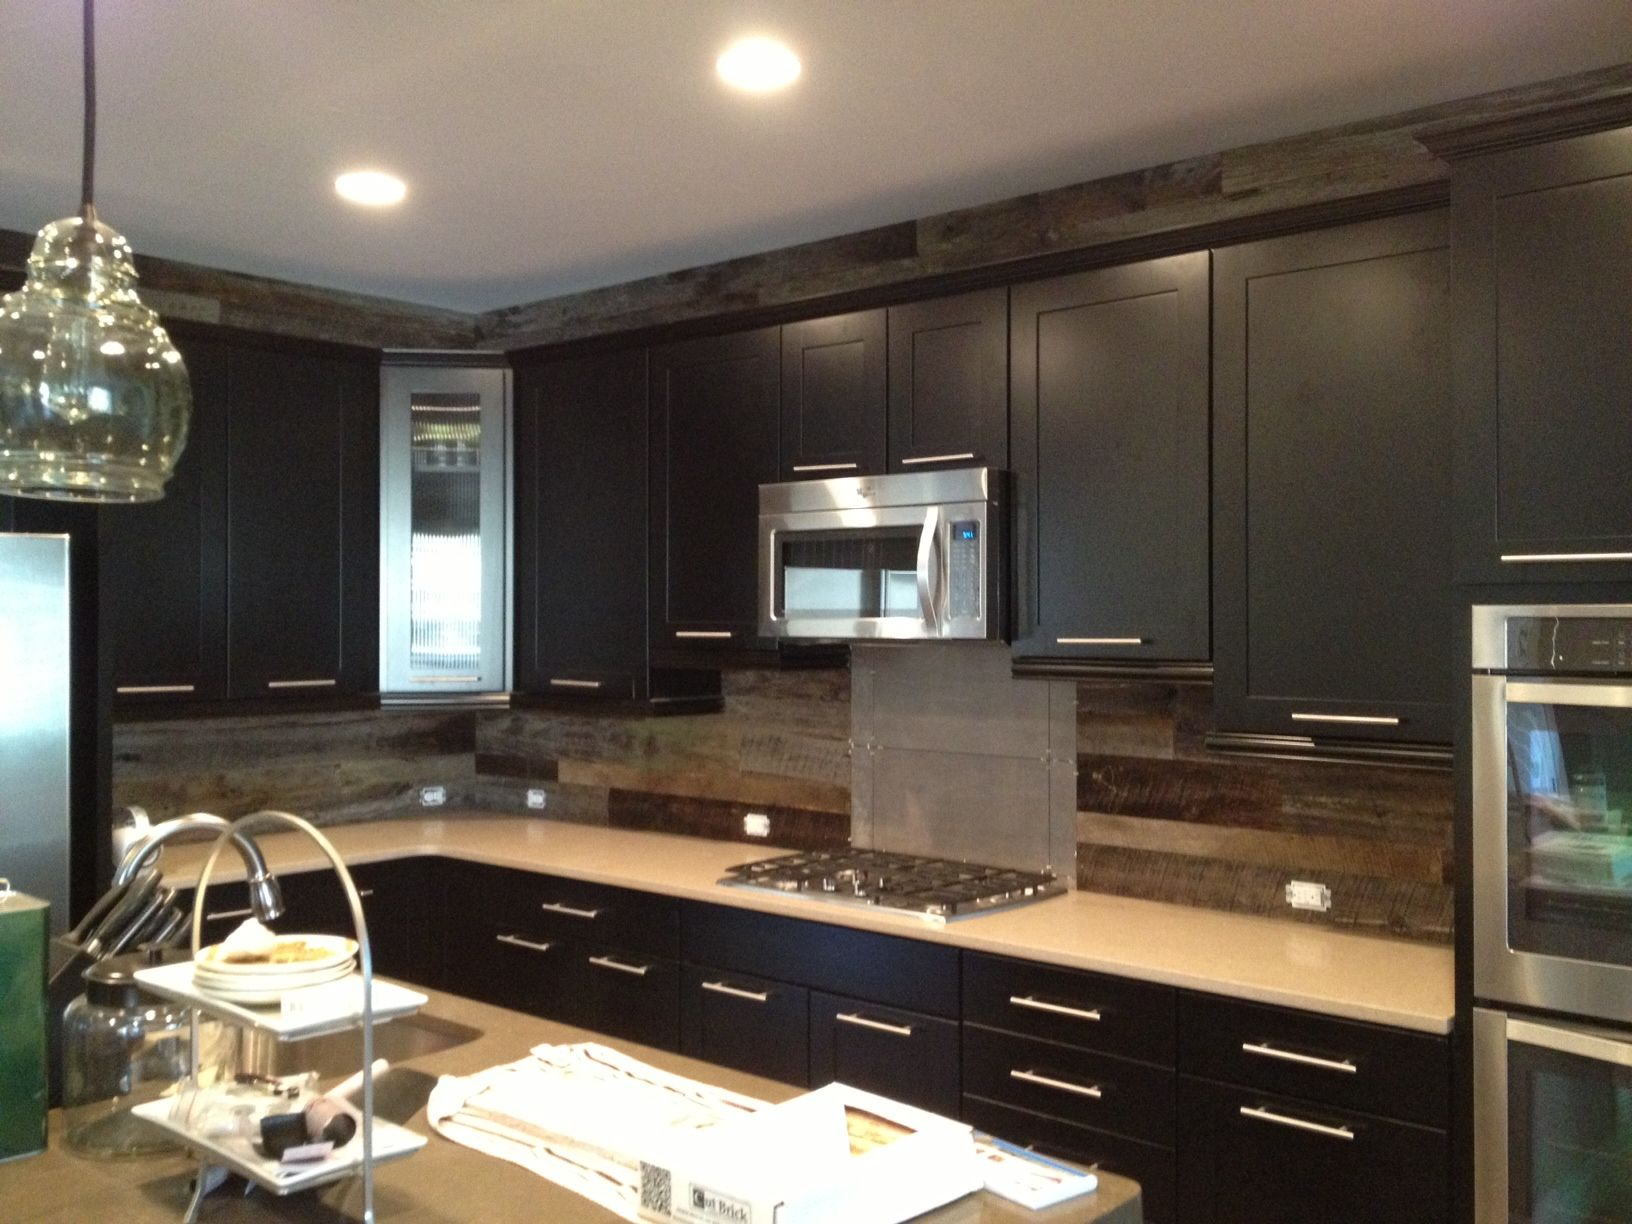 Barn Board Siding Is A Great Choice For The Backsplash And